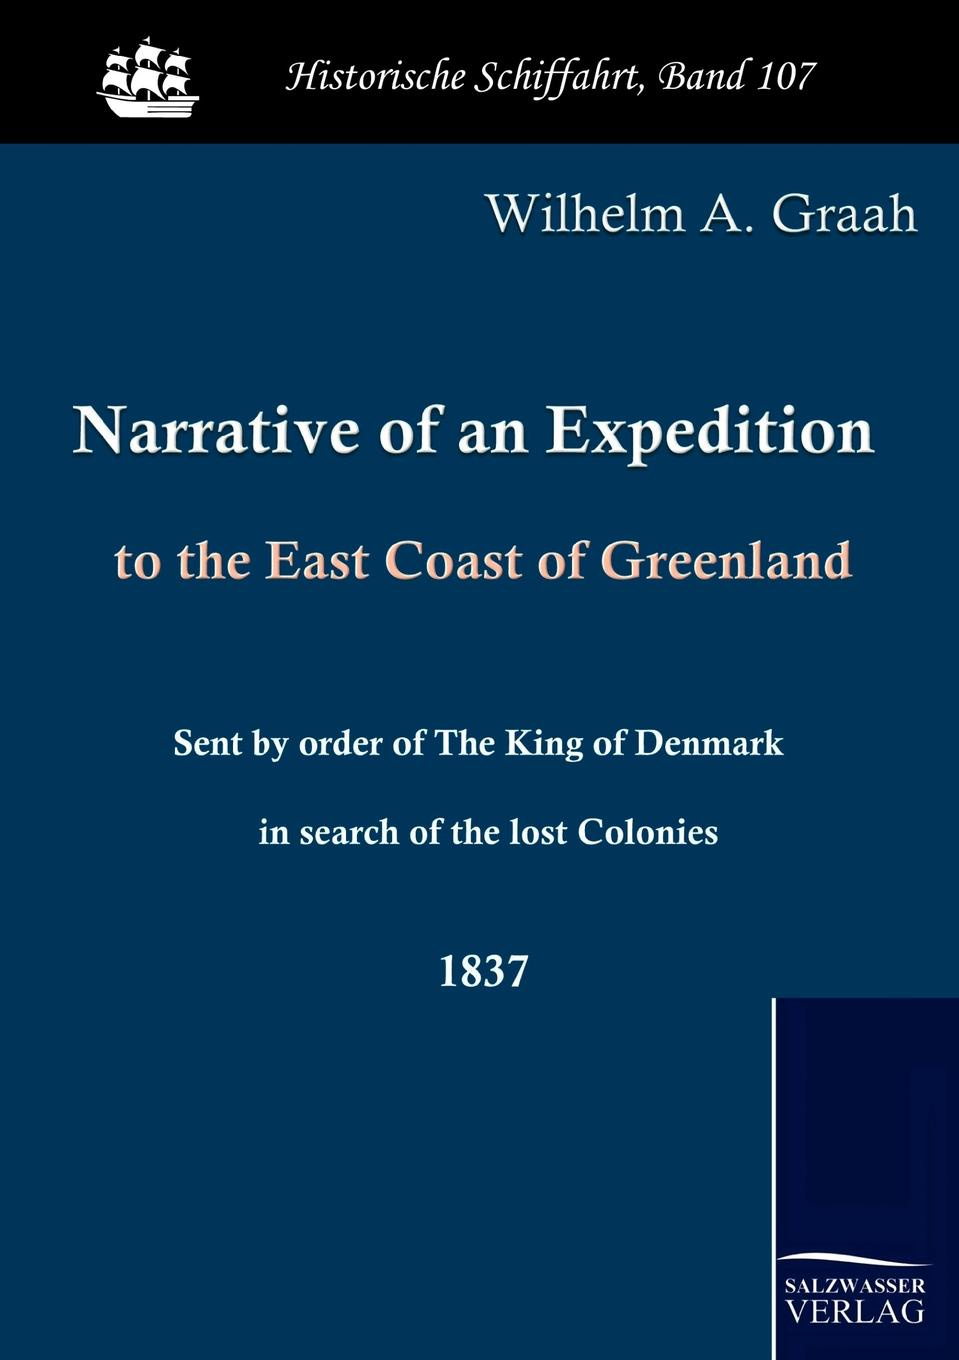 W. A. Graah Narrative of an Expedition to the East Coast of Greenland in search of lost time vol 4